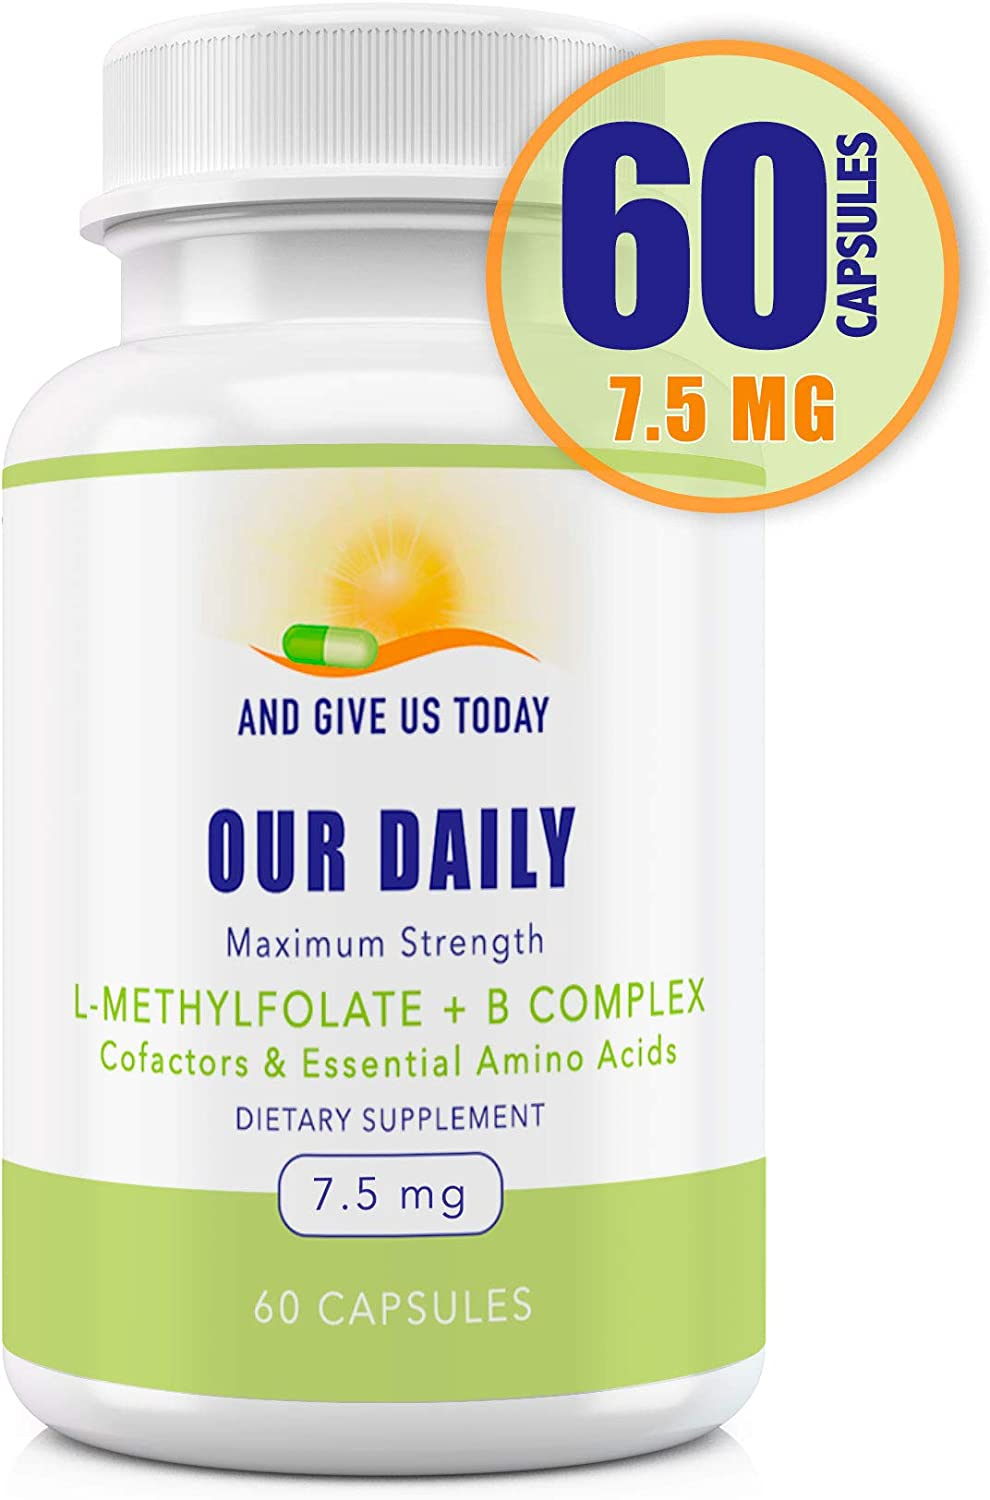 Our Daily Vites L-Methylfolate 7.5 mg + B Complex Cofactors & Essential Amino Acids - Active Folate, Methylated B12, B6 and Glycine for Brain, Heart & Fetal Health, 60 Count (2 Month Supply)